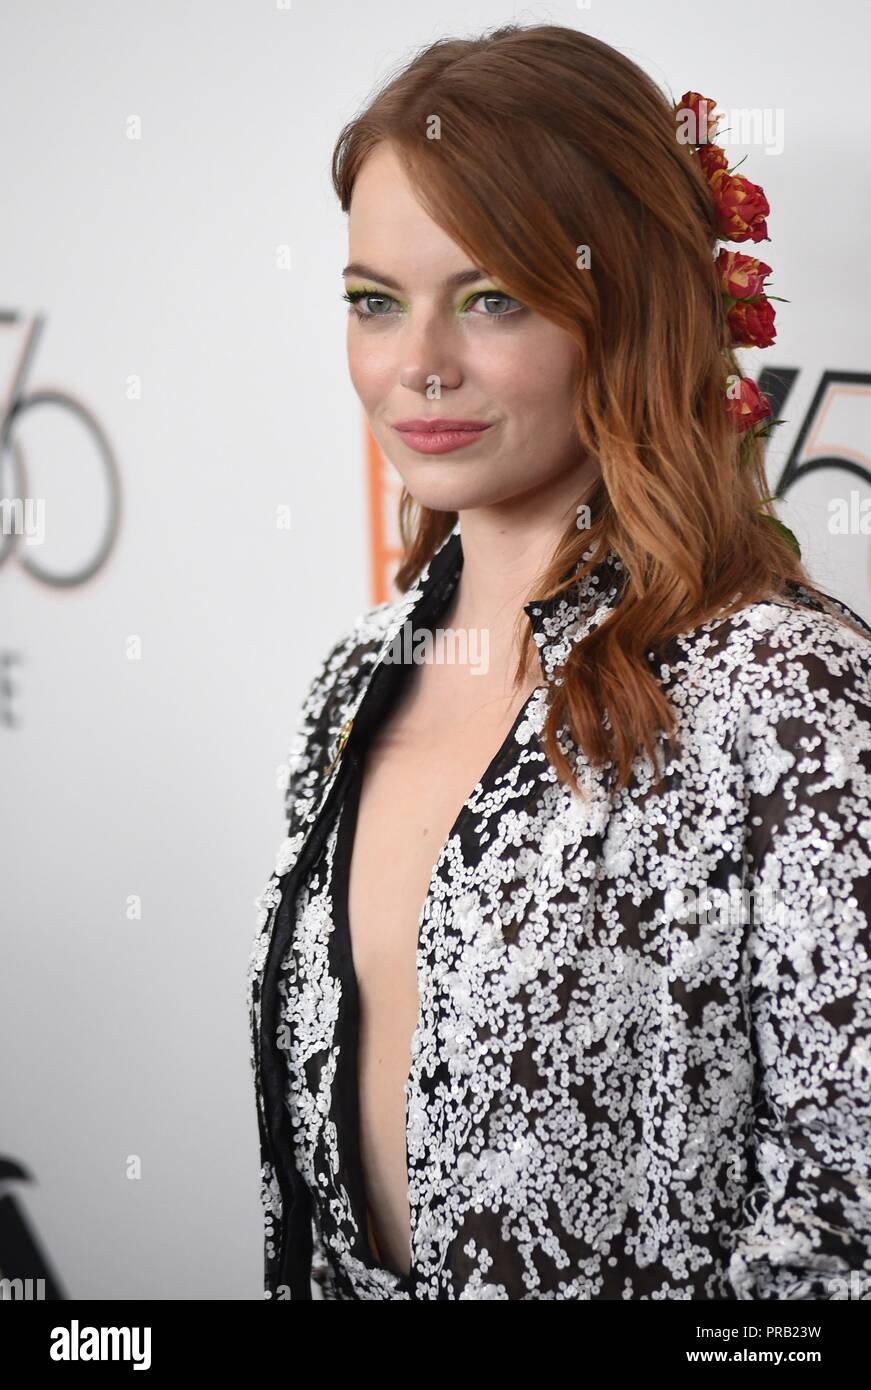 Emma Stone at arrivals for THE FAVOURITE Premiere at the New York Film Festival Opening Night, Alice Tully Hall at Lincoln Center, New York, NY September 28, 2018. Photo By: Kristin Callahan/Everett Collection - Stock Image